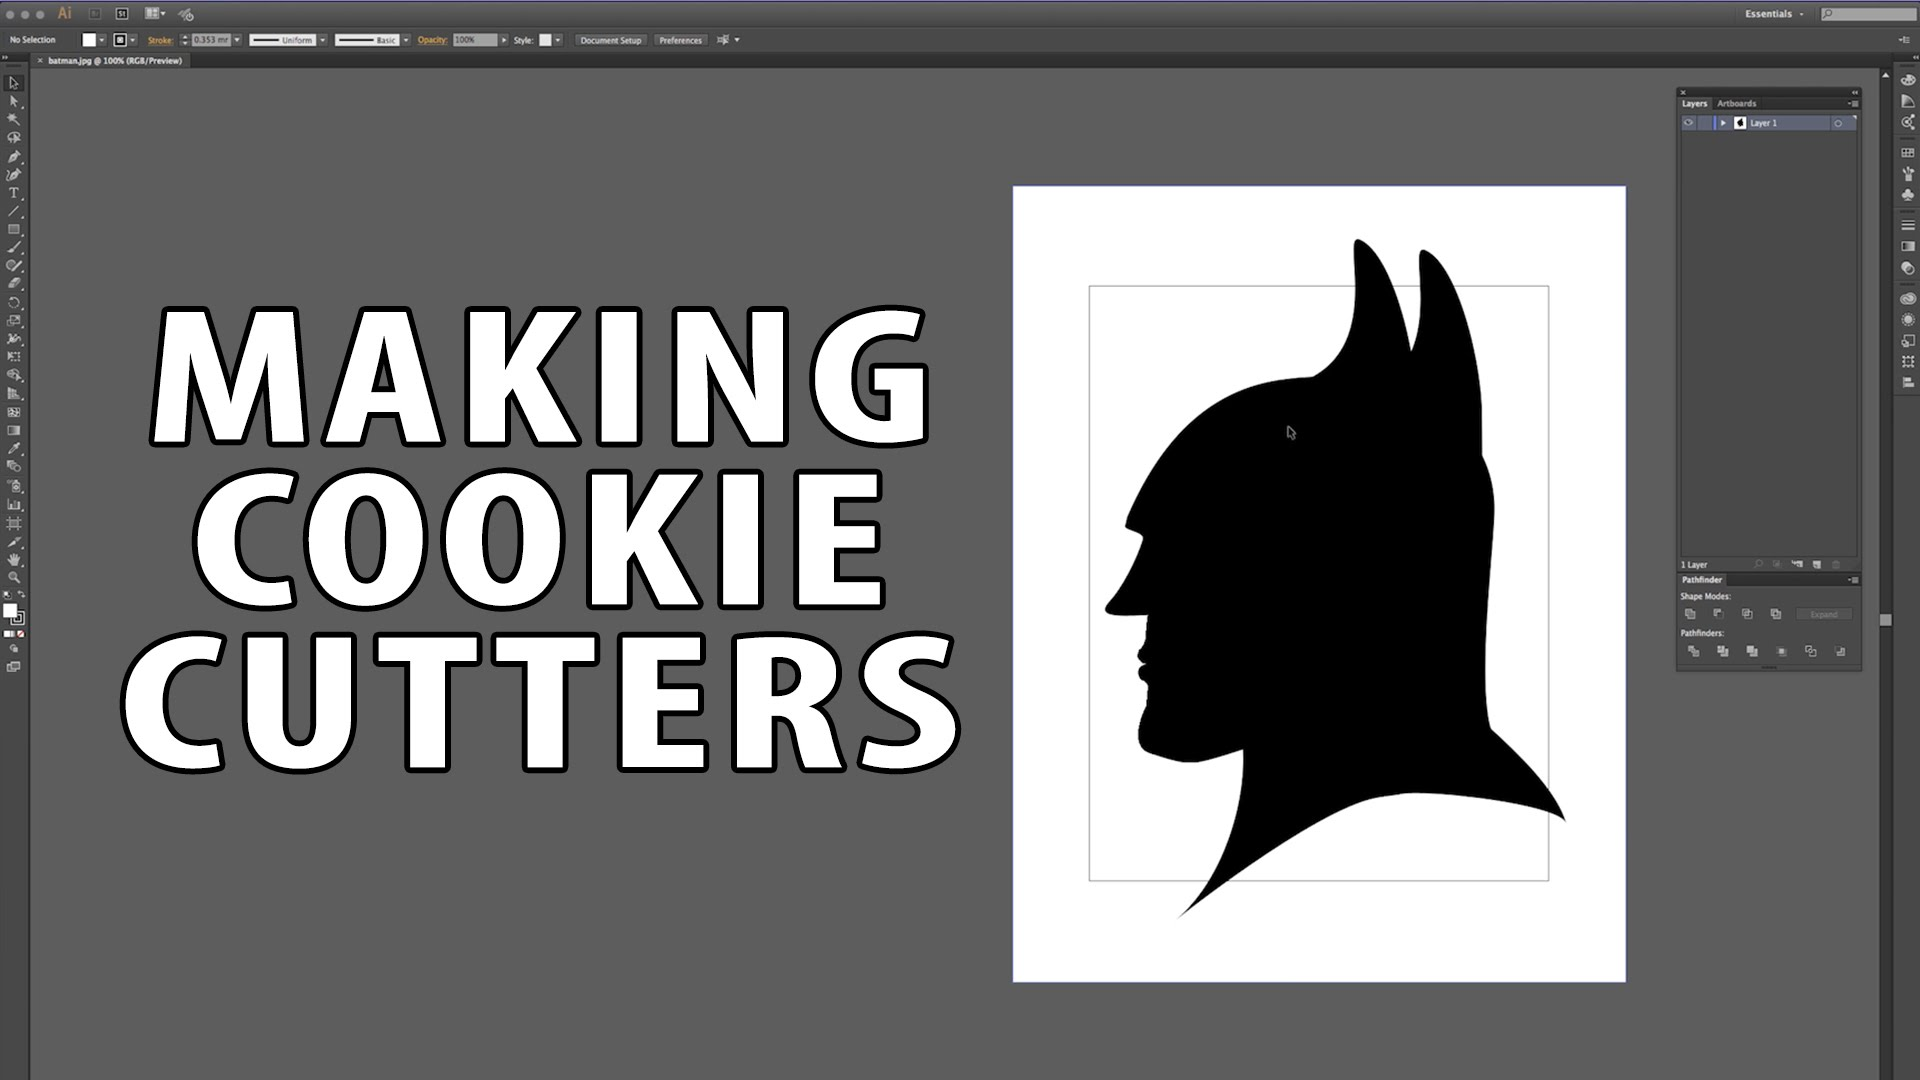 3D Printing Cookie Cutter Tutorial using Illustrator & Photoshop